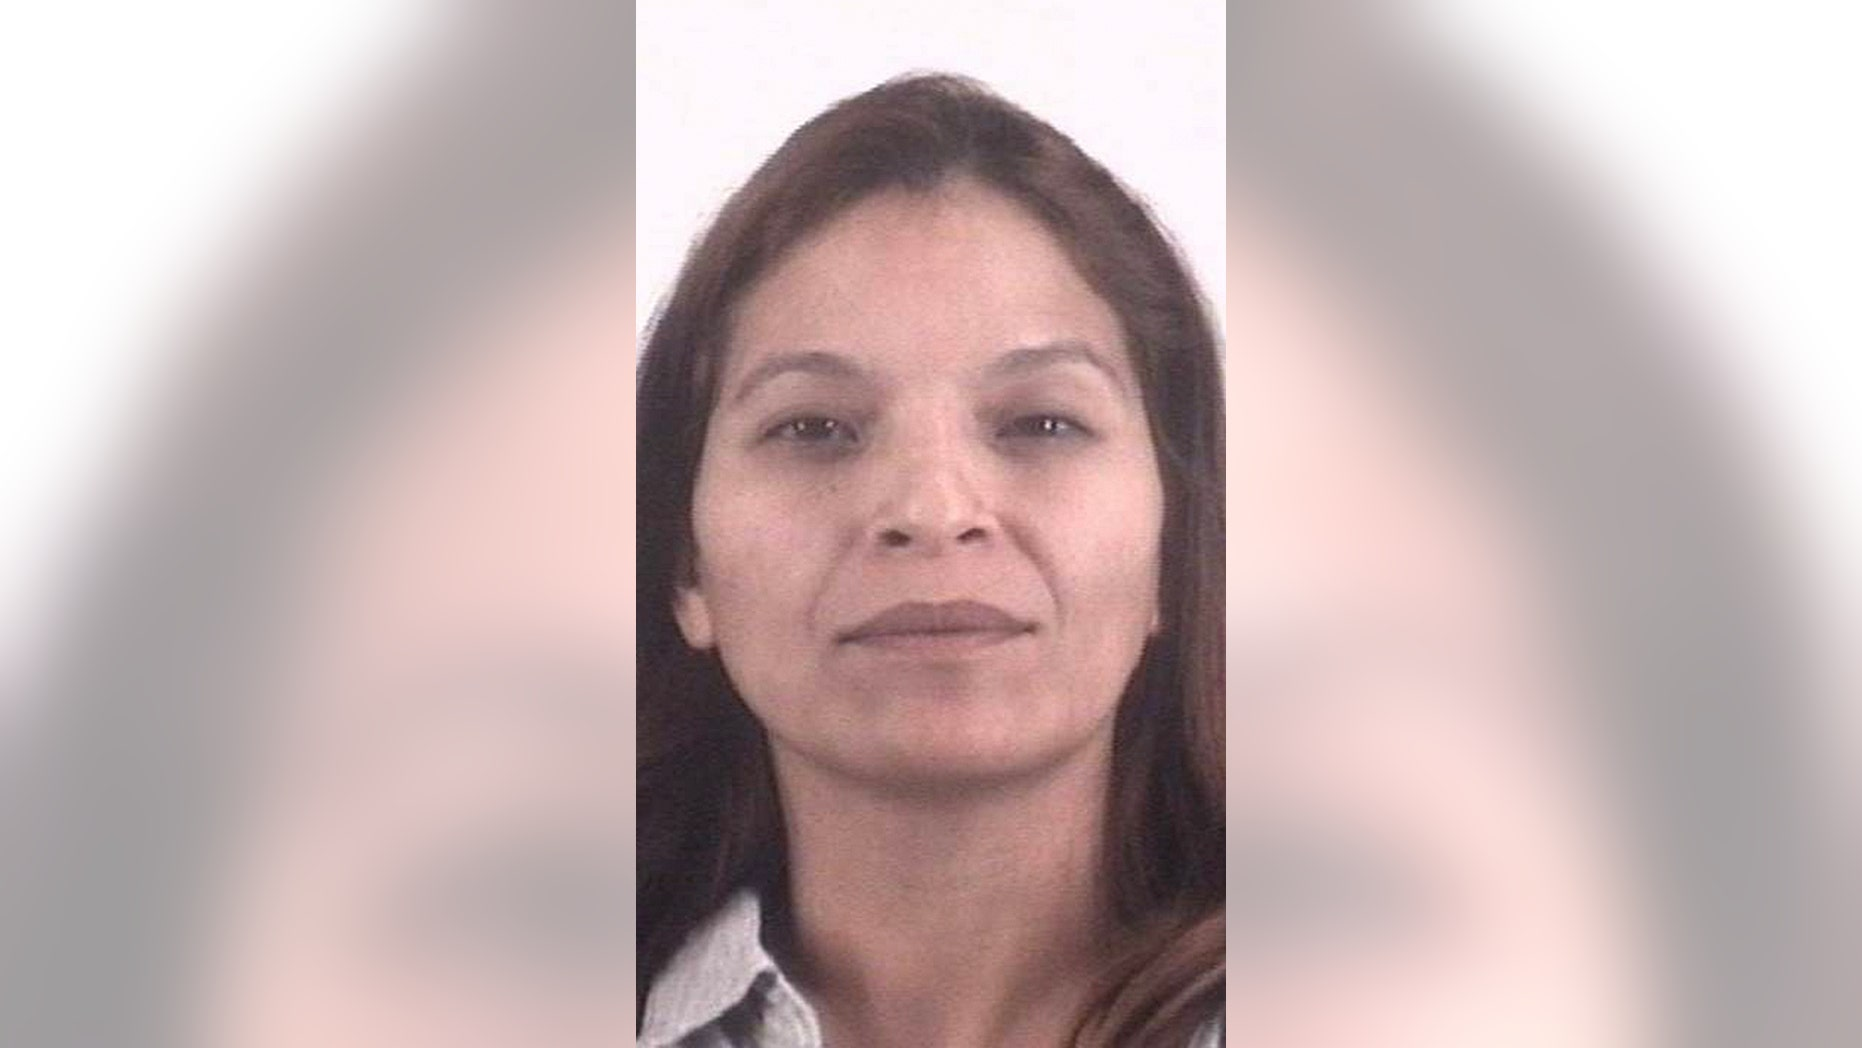 Rosa Maria Ortega was sentenced to 8 years in prison for voter fraud.